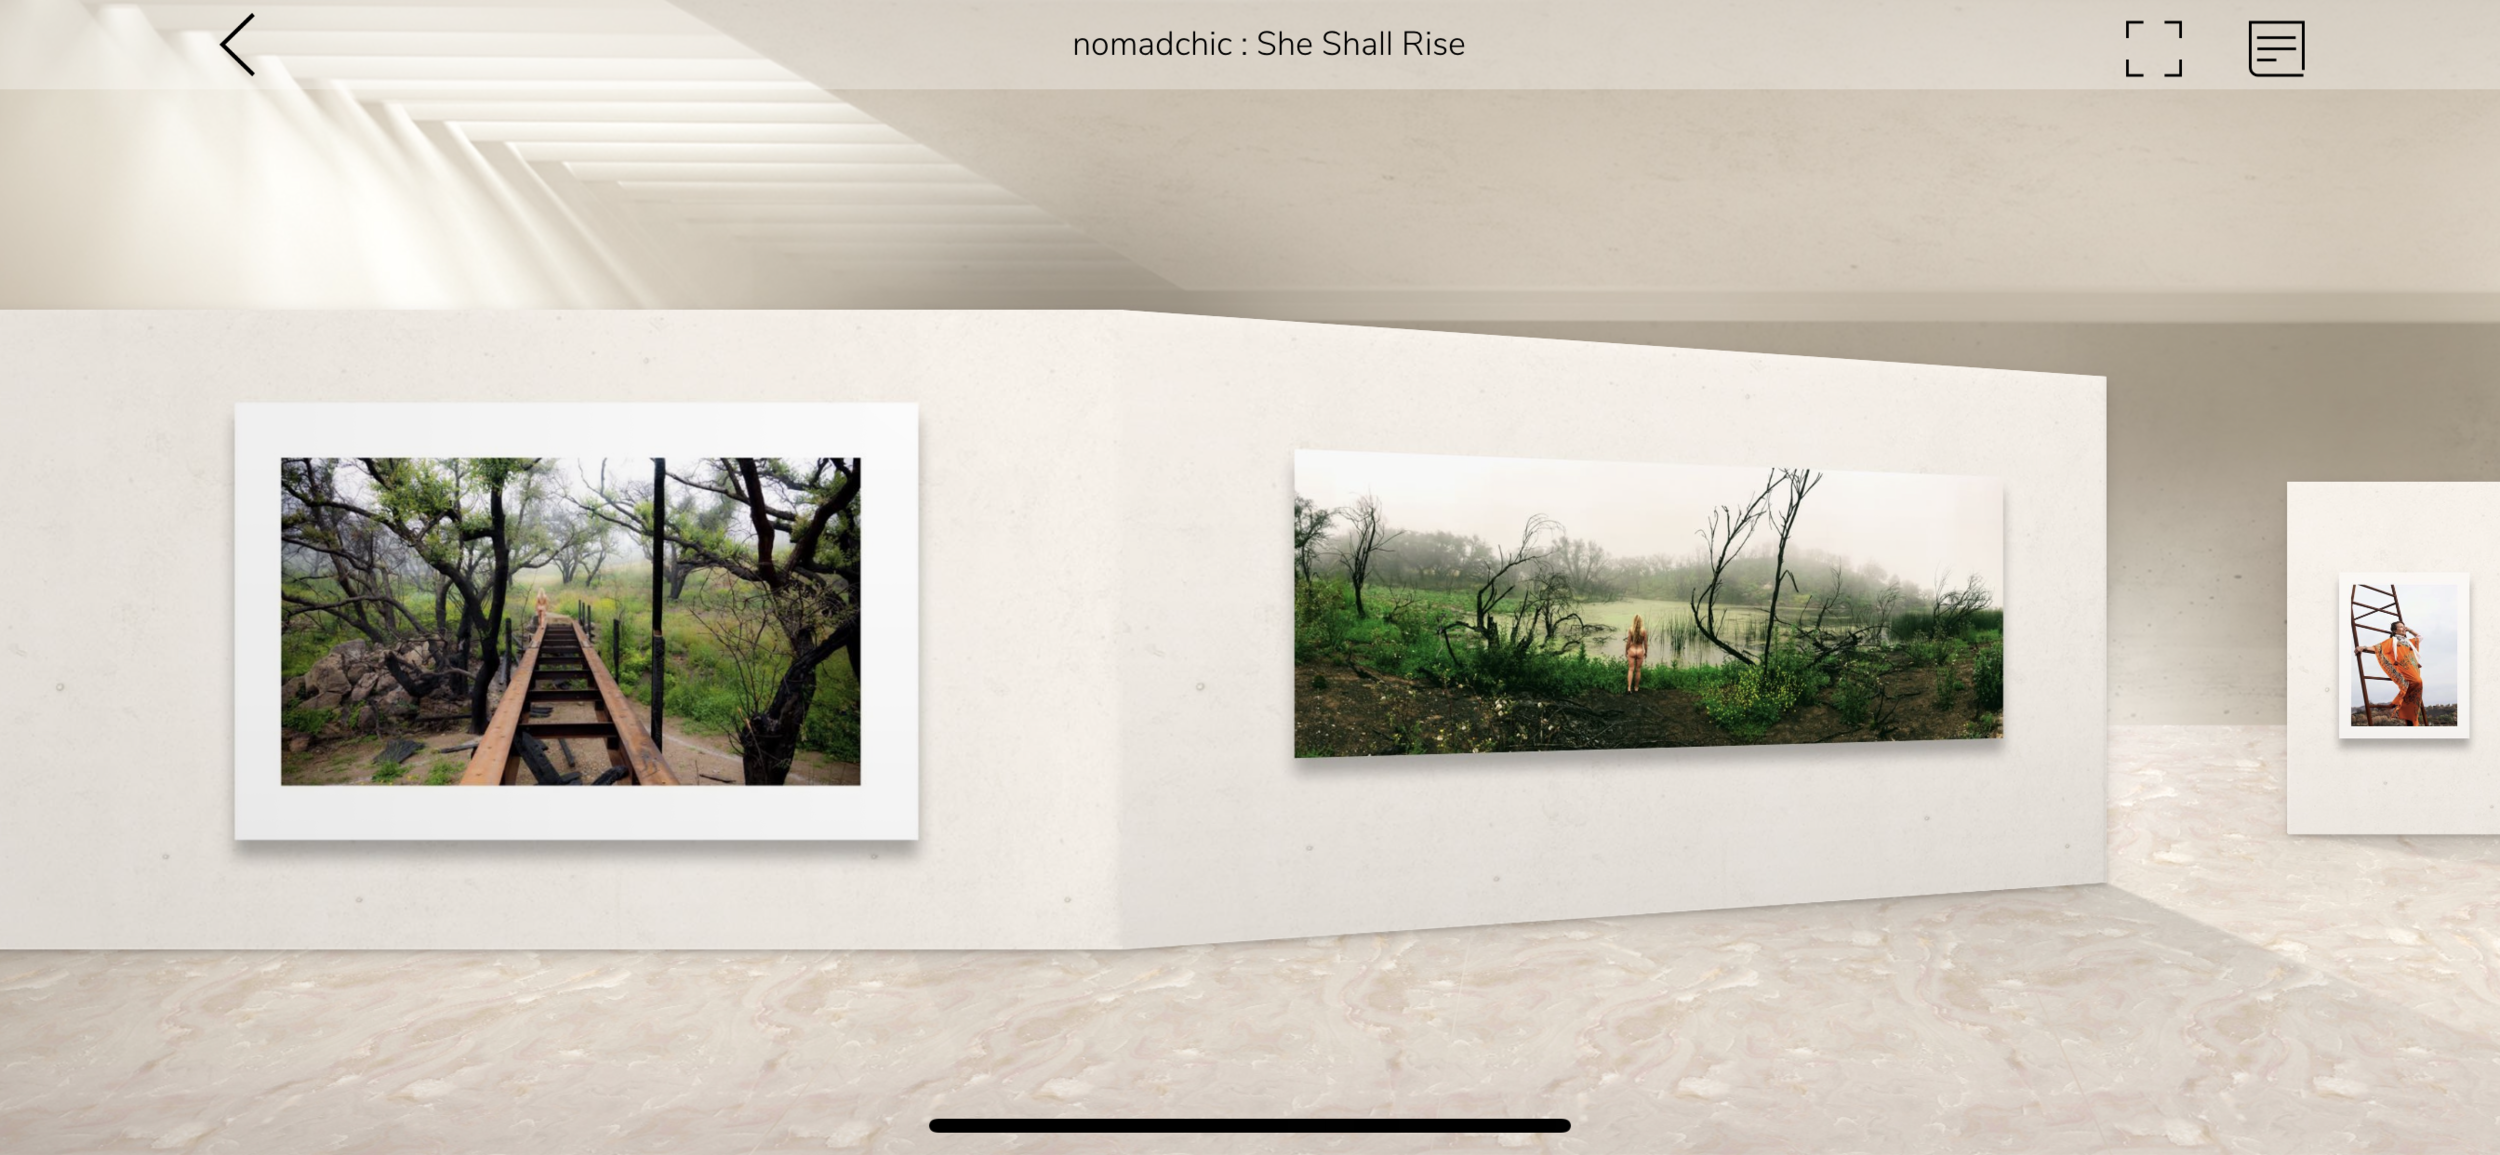 Download the free app D EmptySapce to create and visit virtual art galleries.